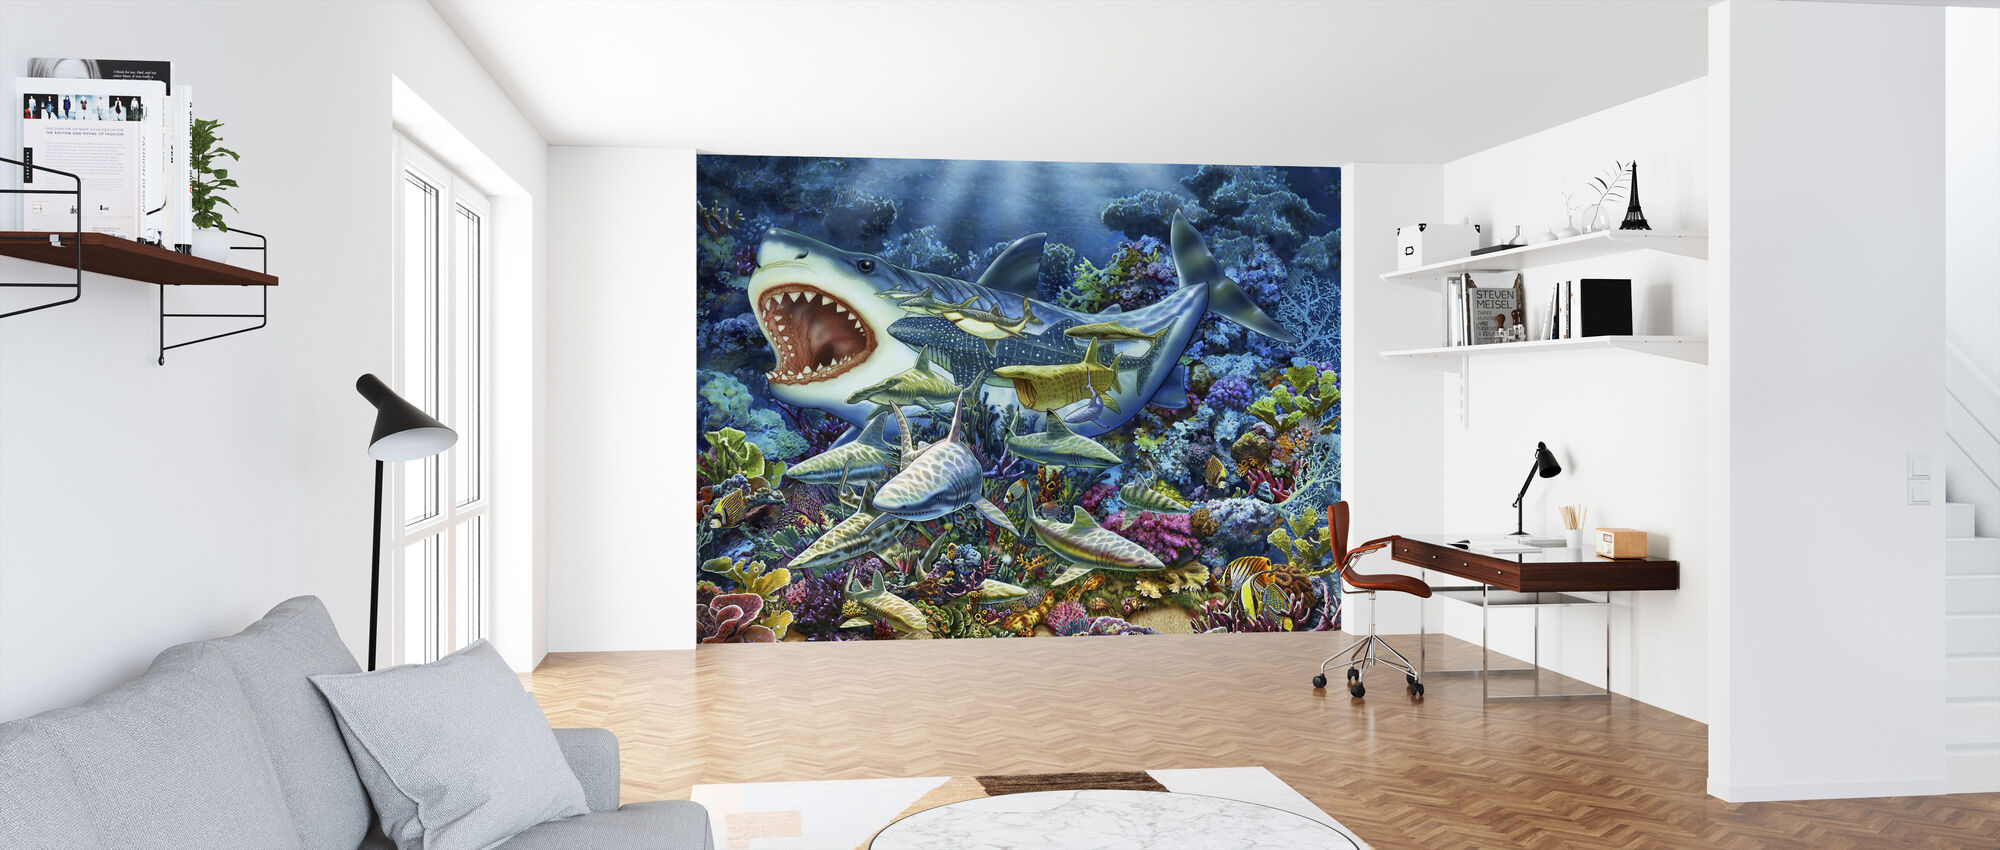 Shark Adventure - Wallpaper - Office